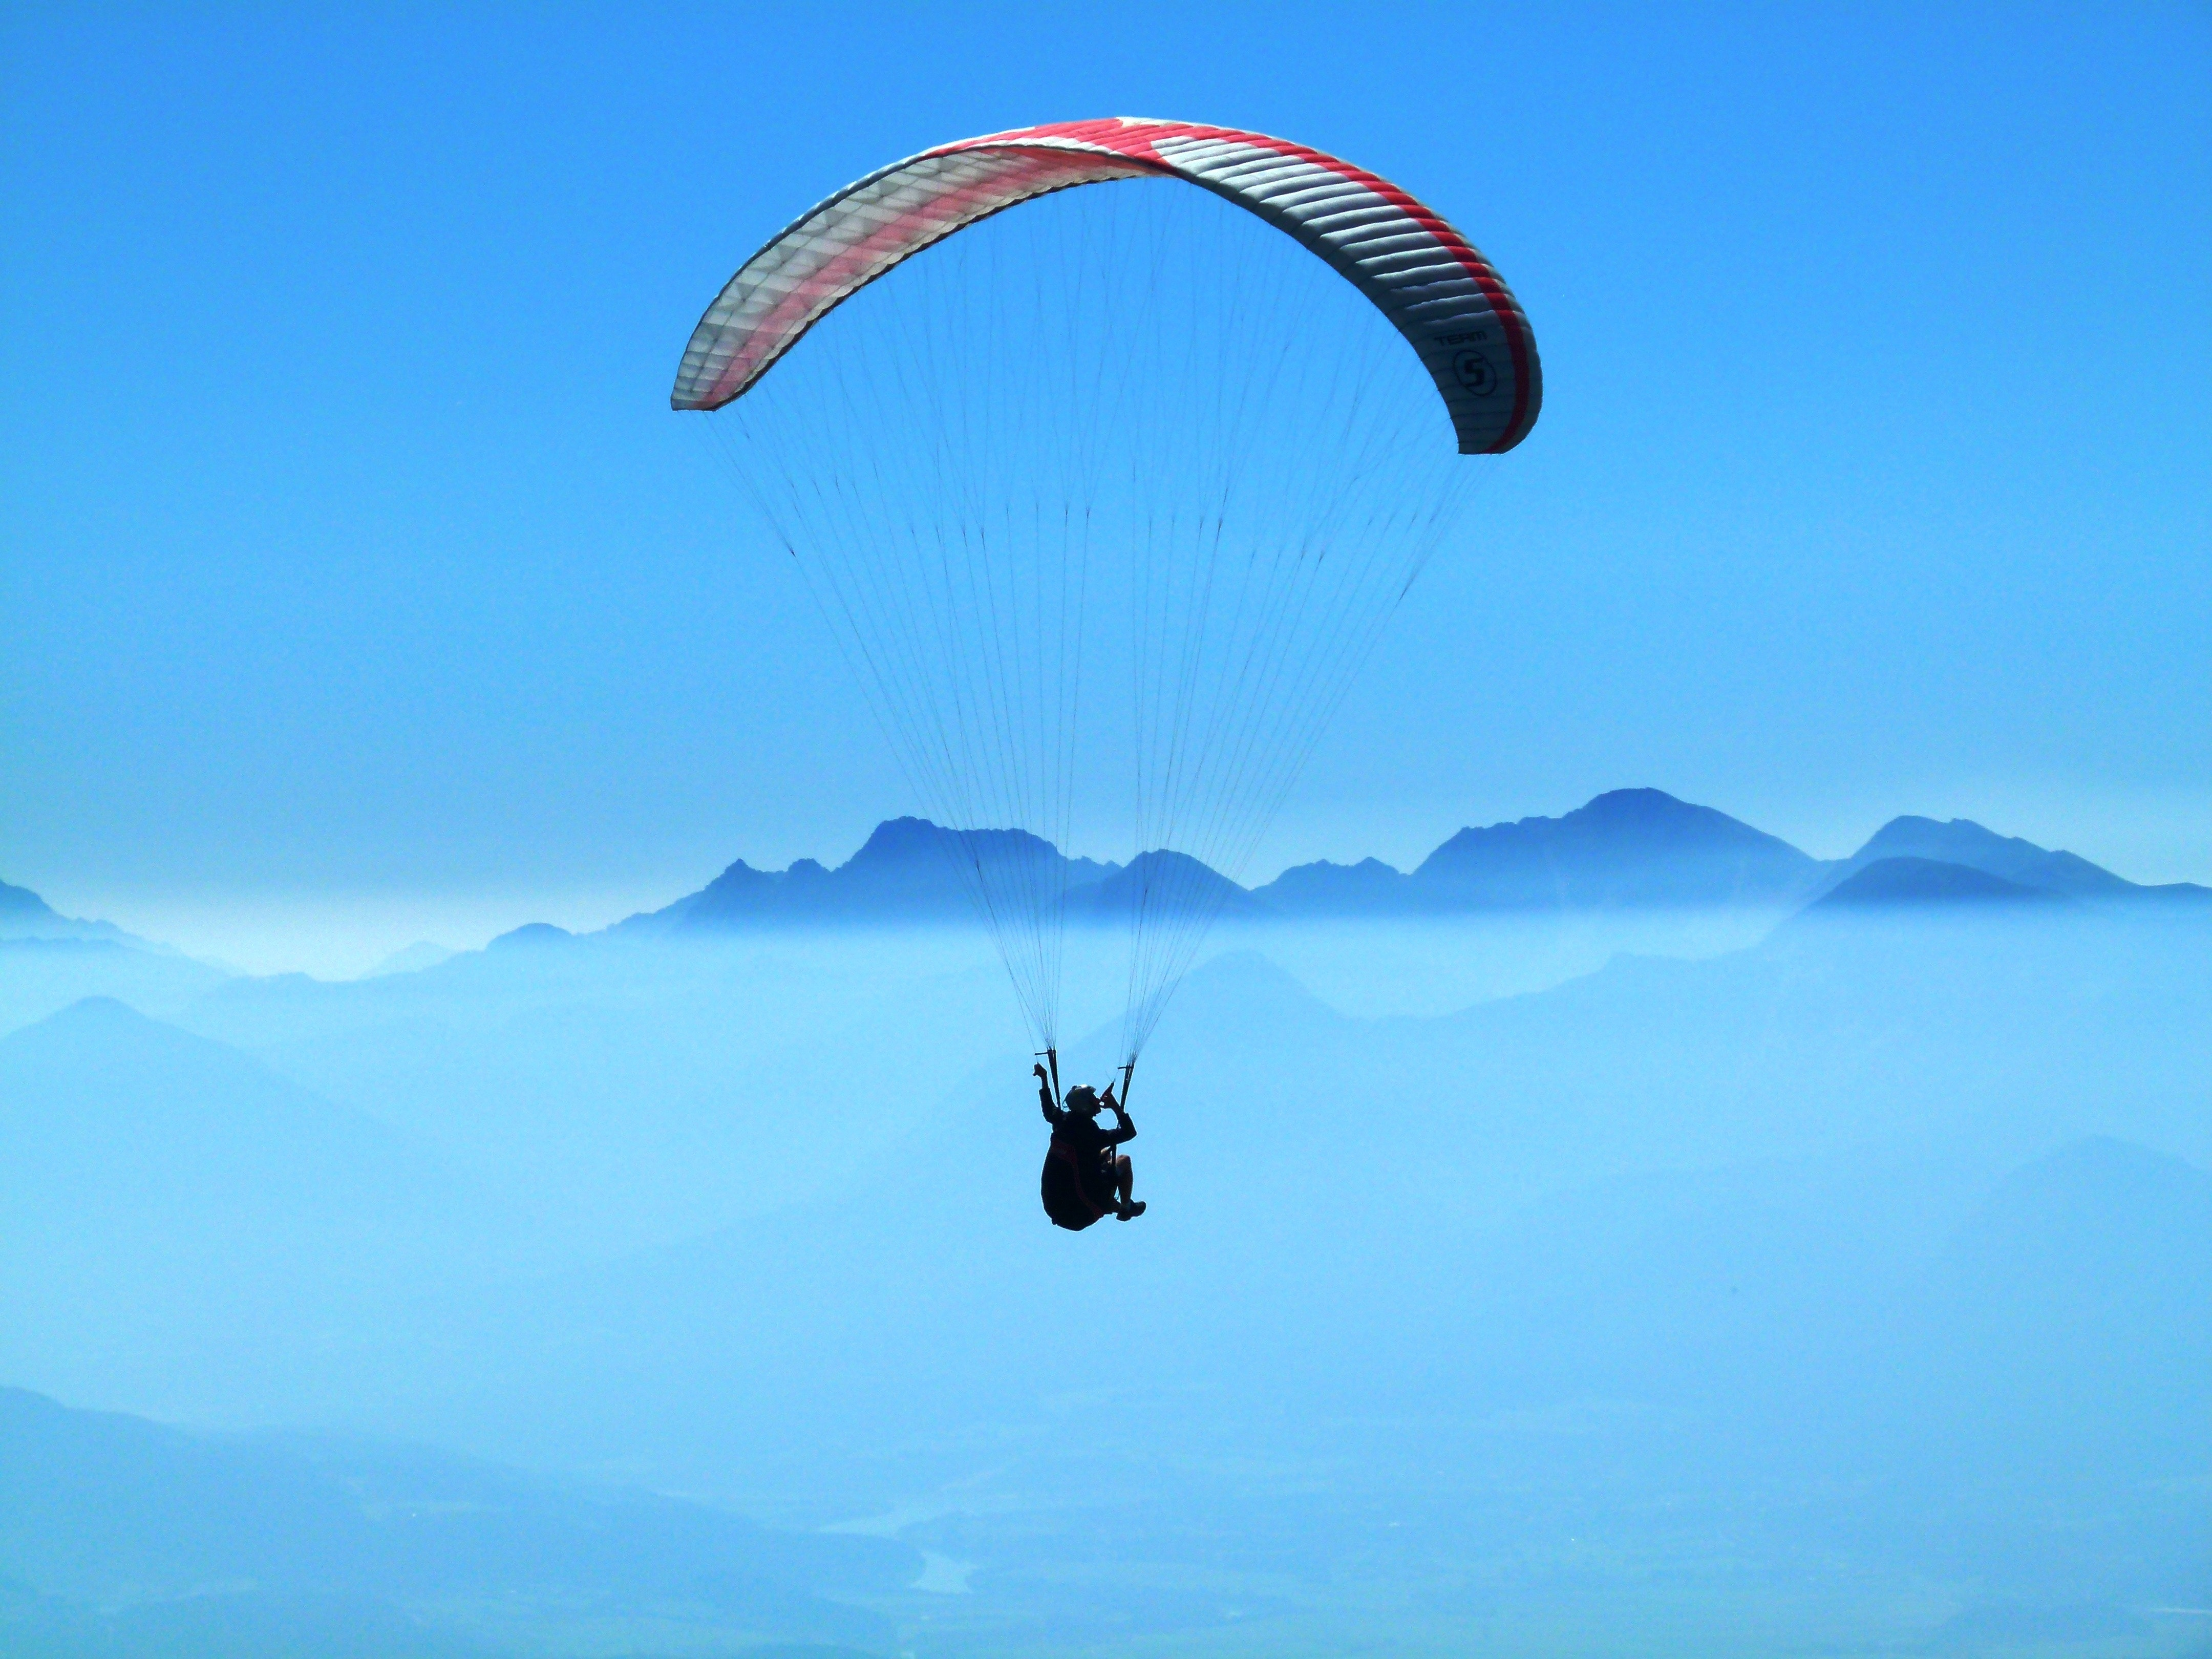 person doing paragliding above clouds during daytime · free stock photo